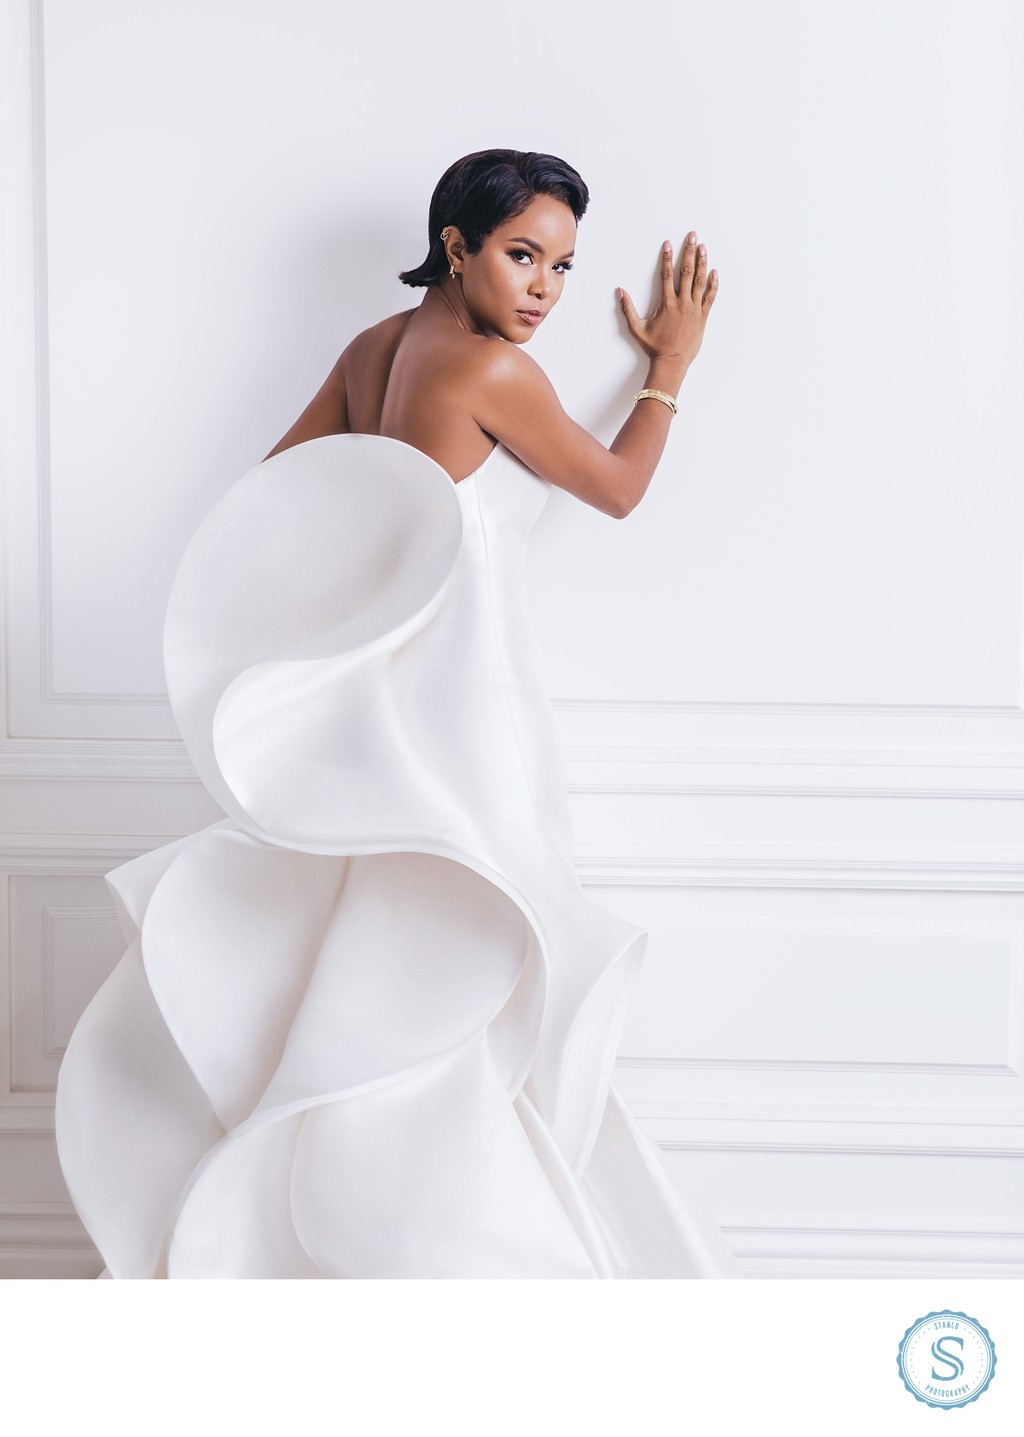 Black Bride Letoya Luckett